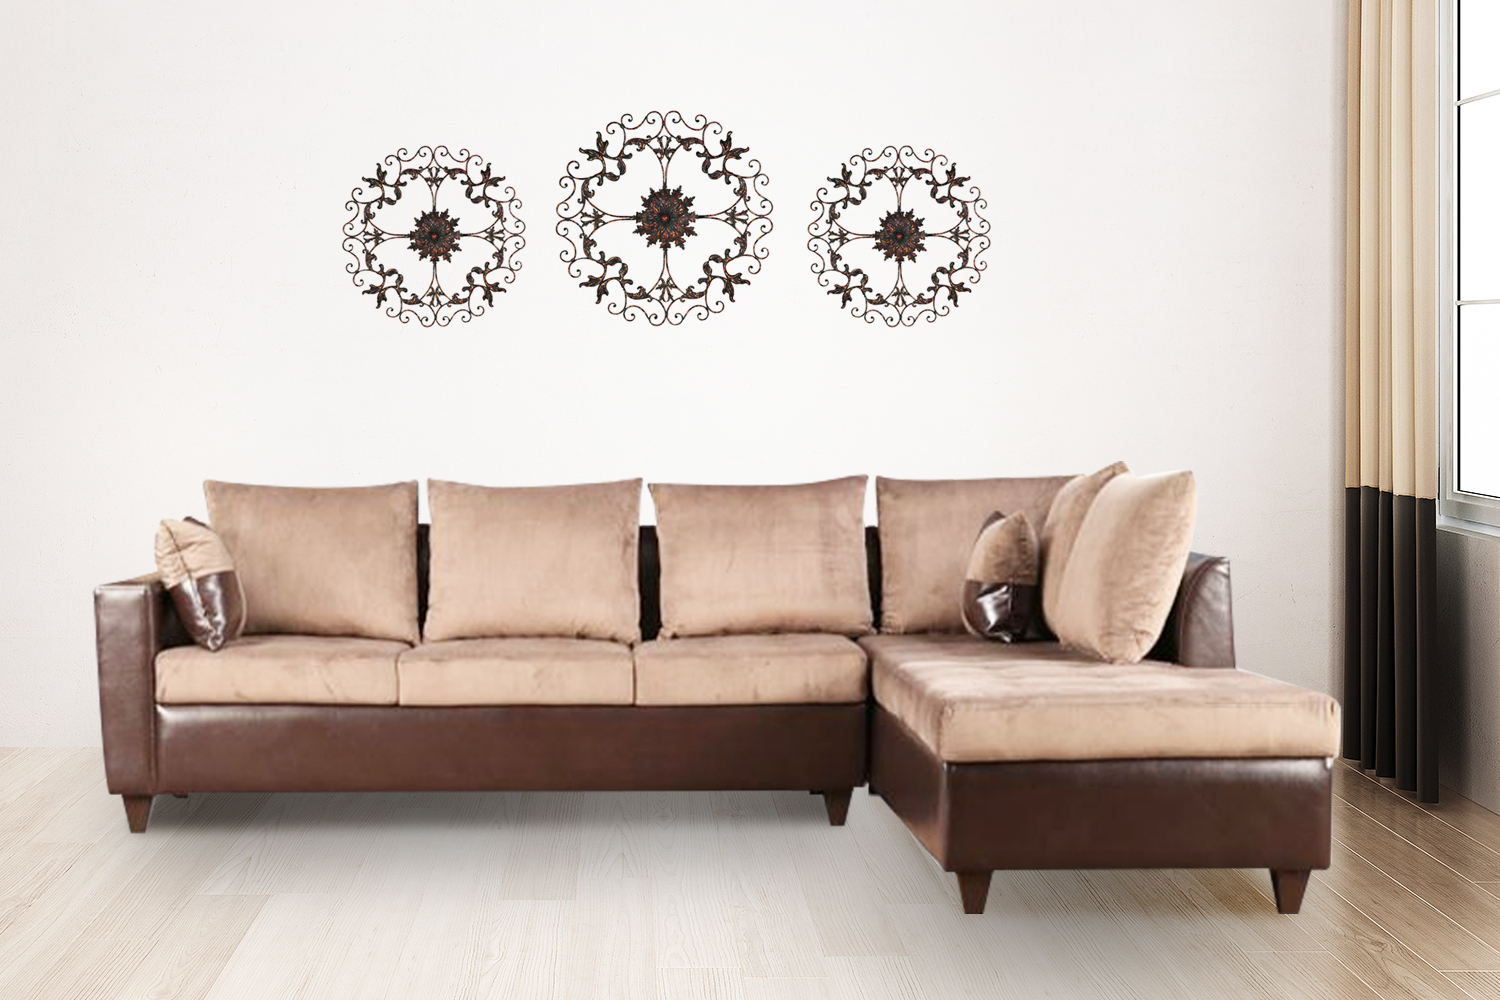 Jeremy Fabric & Leatherette Lounger in Brown Colour by HomeTown